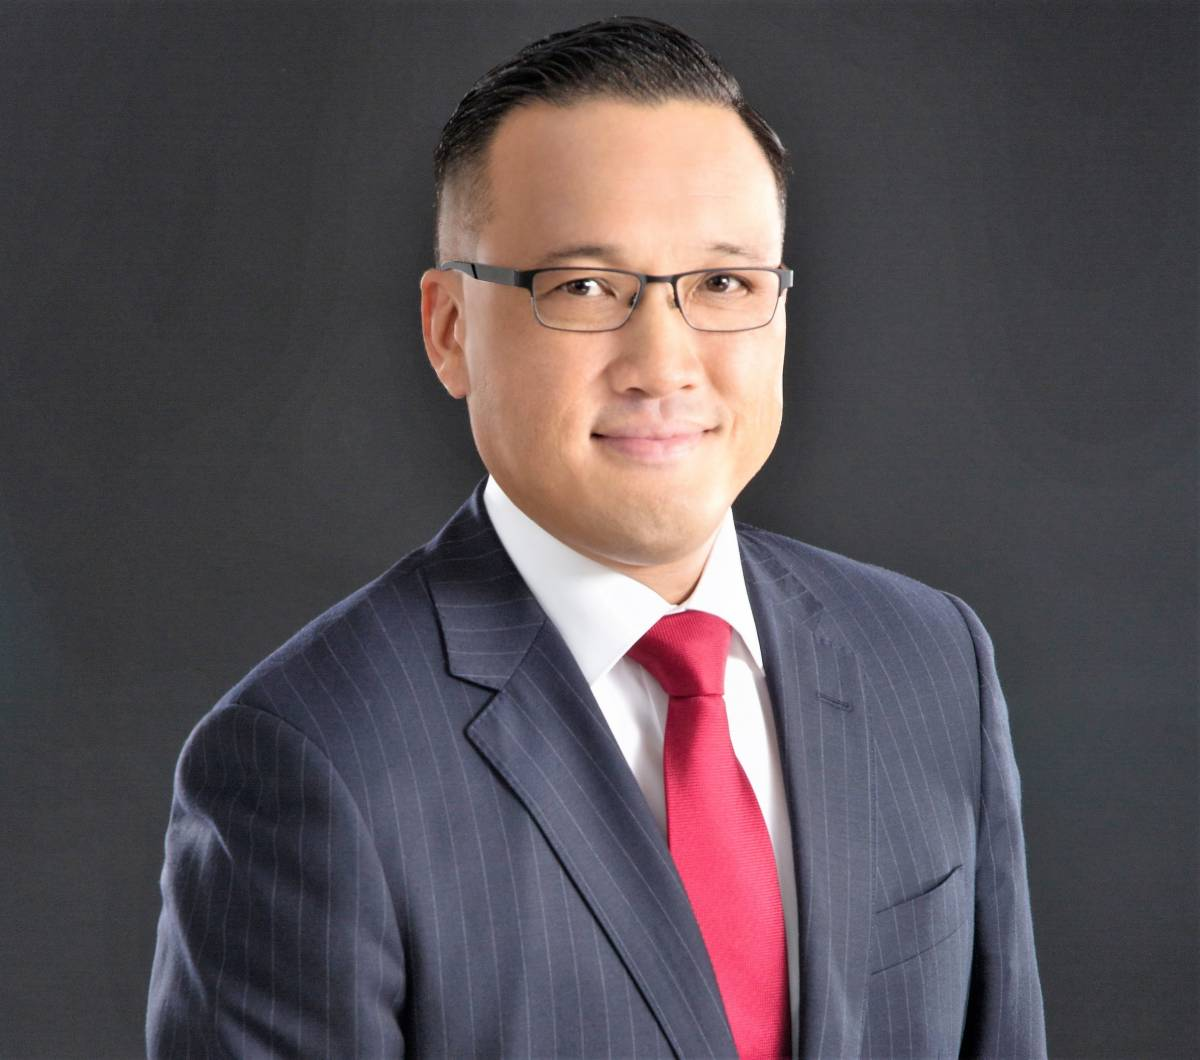 JASON LEUNG APPOINTED NEW GENERAL MANAGER OF SINGAPORE MARRIOTT TANG PLAZA HOTEL